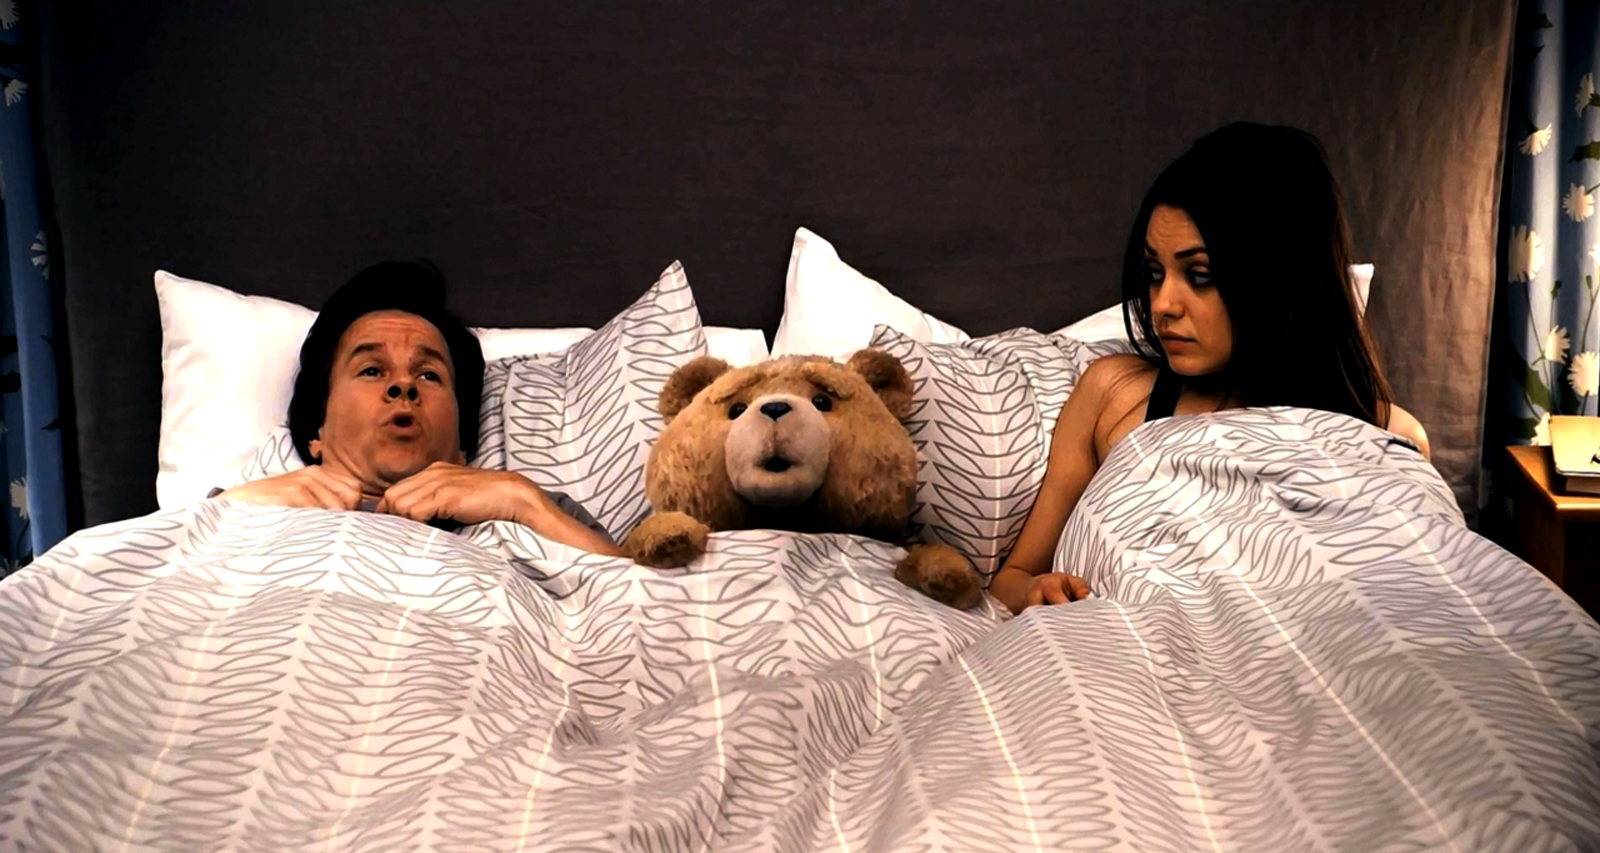 http://2.bp.blogspot.com/-NxBnveqeF_M/T-wncdYUcGI/AAAAAAAACWg/FLolnKn5lIU/s1600/Mark_Wahlberg_Ted_and_Mila_Kunis_Ted_2012_Movie_HD_Wallpaper-Vvallpaper.Net.jpg